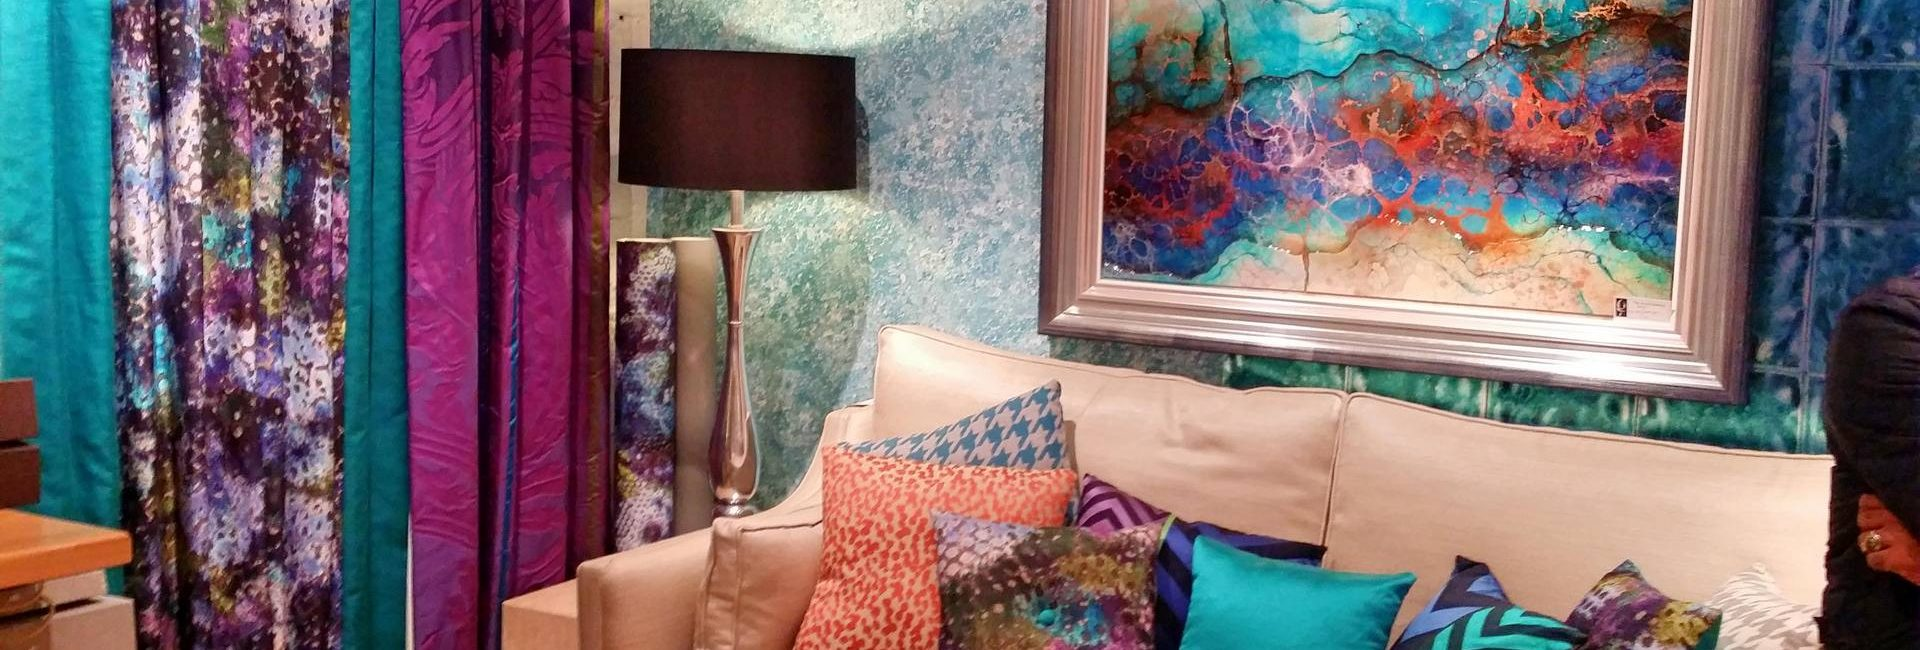 Display area featuring wallpaper, sofa, curtains and coordinated Kerry Darlington artwork at Fabric Gallery and Interiors in York